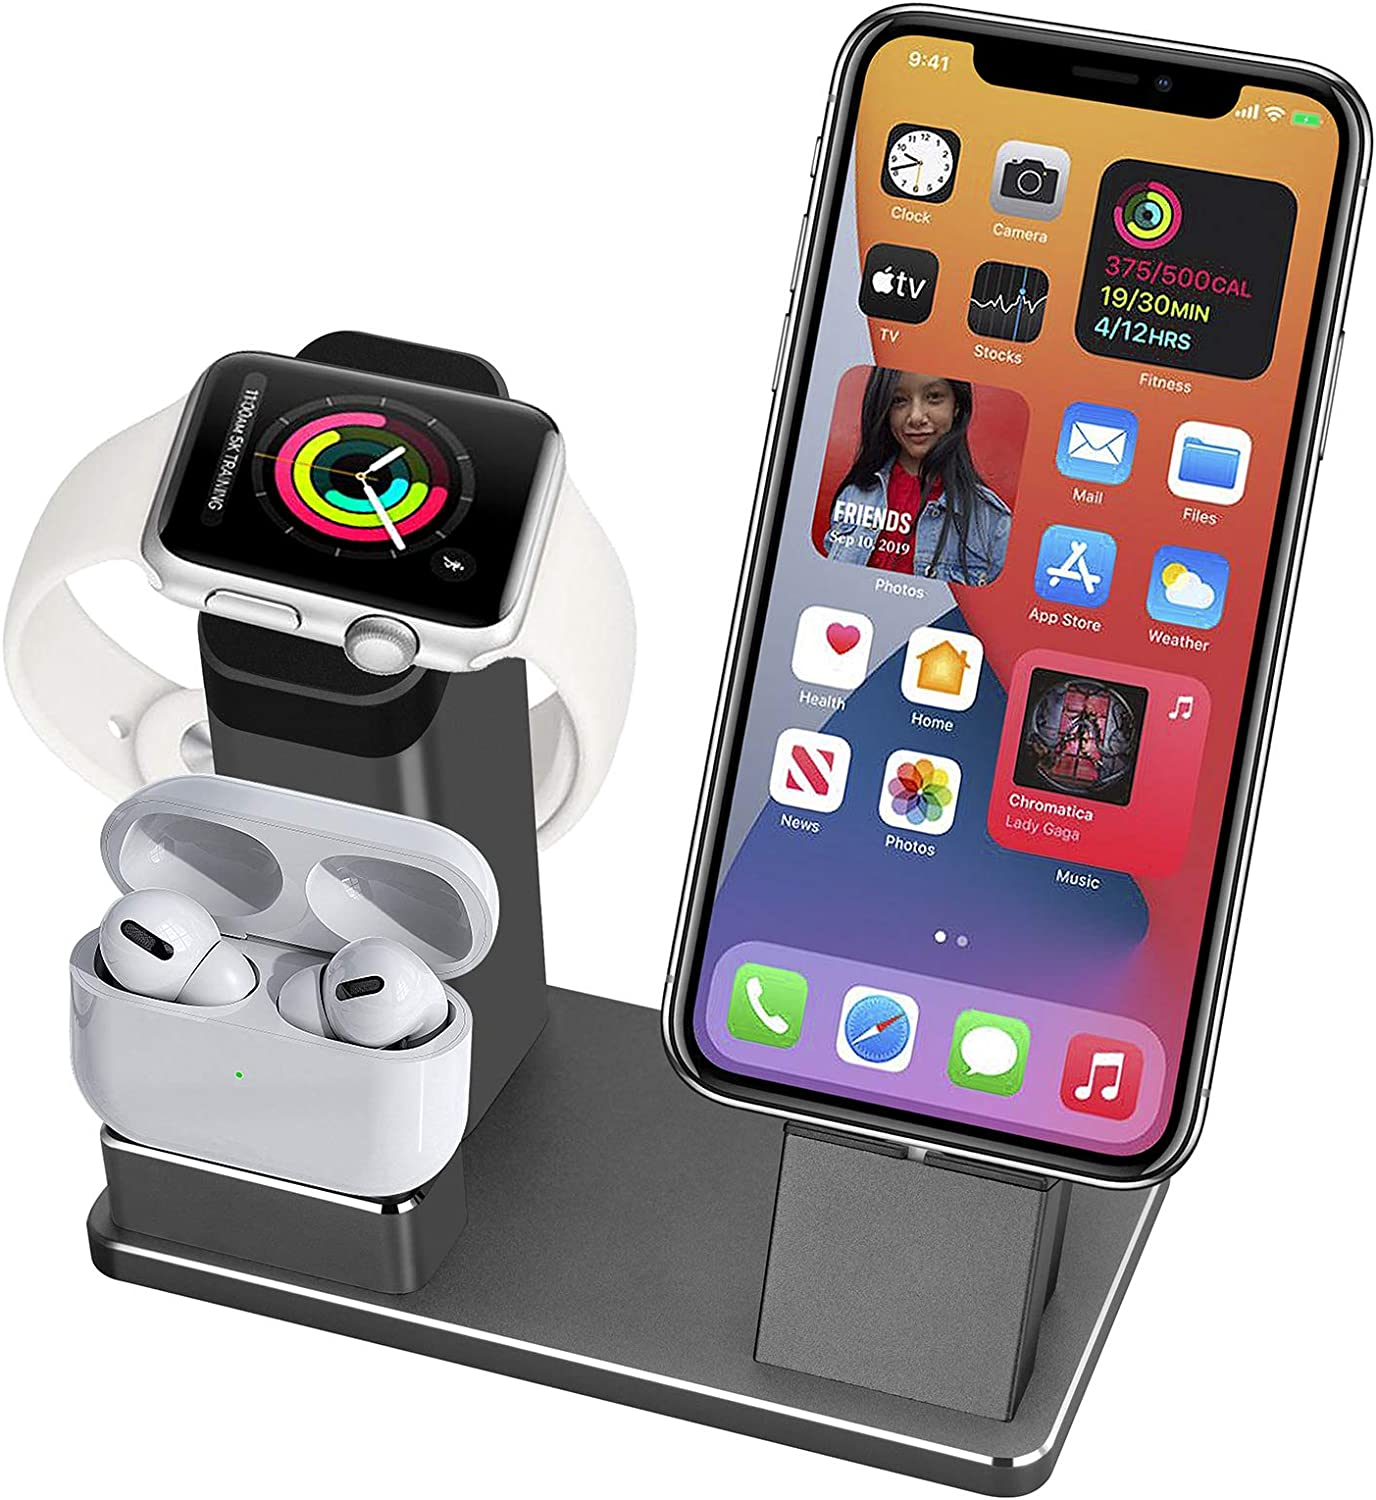 3 in 1 Aluminum Alloy Charging Stand Compatible with Apple Watch Series 5/4/3/2/1, AirPods and Charger Stand Doc Holder for iPhone 12/11/11 Pro/Max/Xs/X Max/XR/X/8/8Plus/7 Plus /6S /Plus